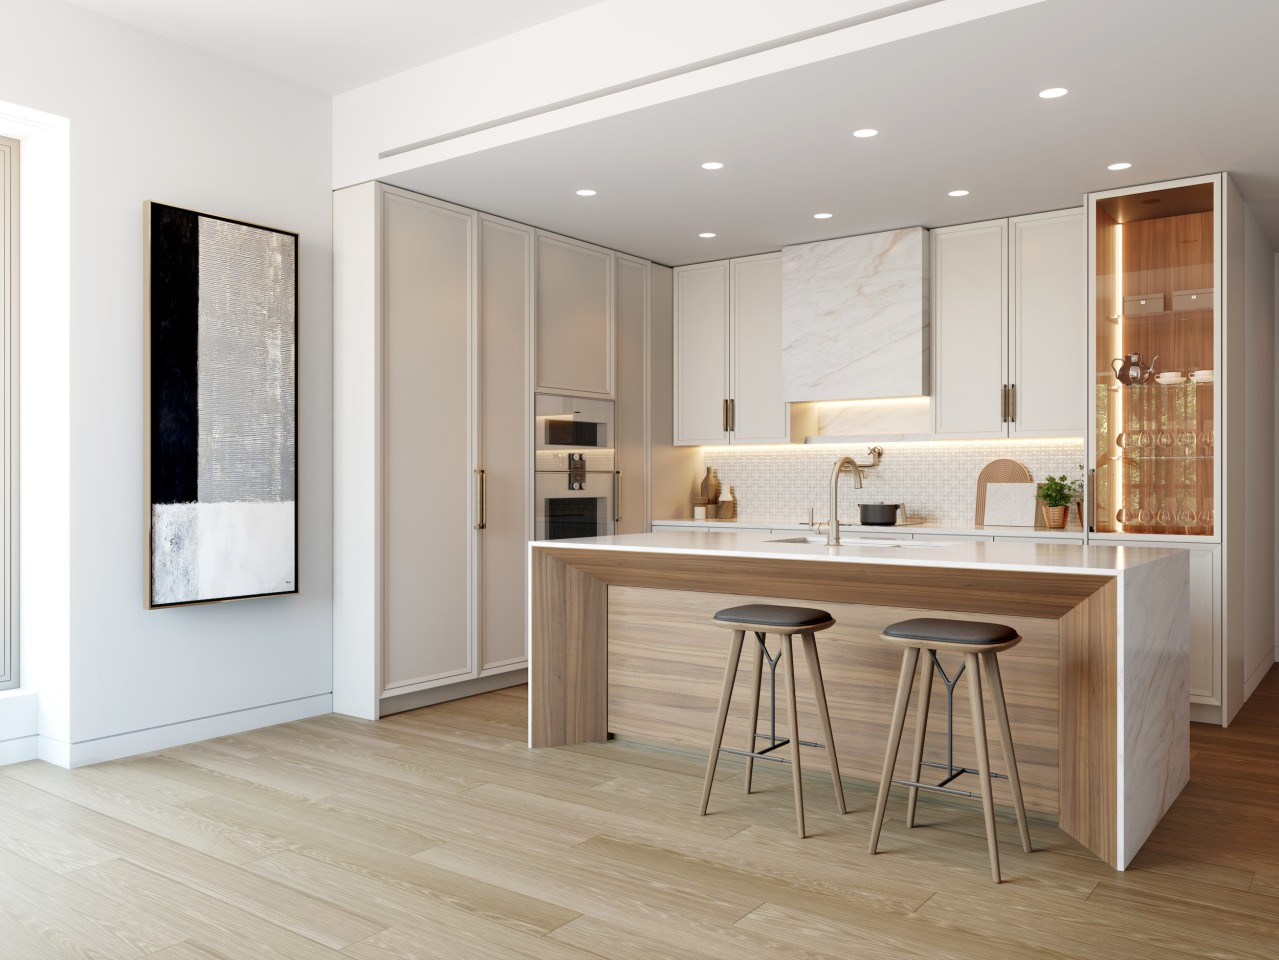 The Era's interiors will feature high-end materials like oak floors and marble countertops